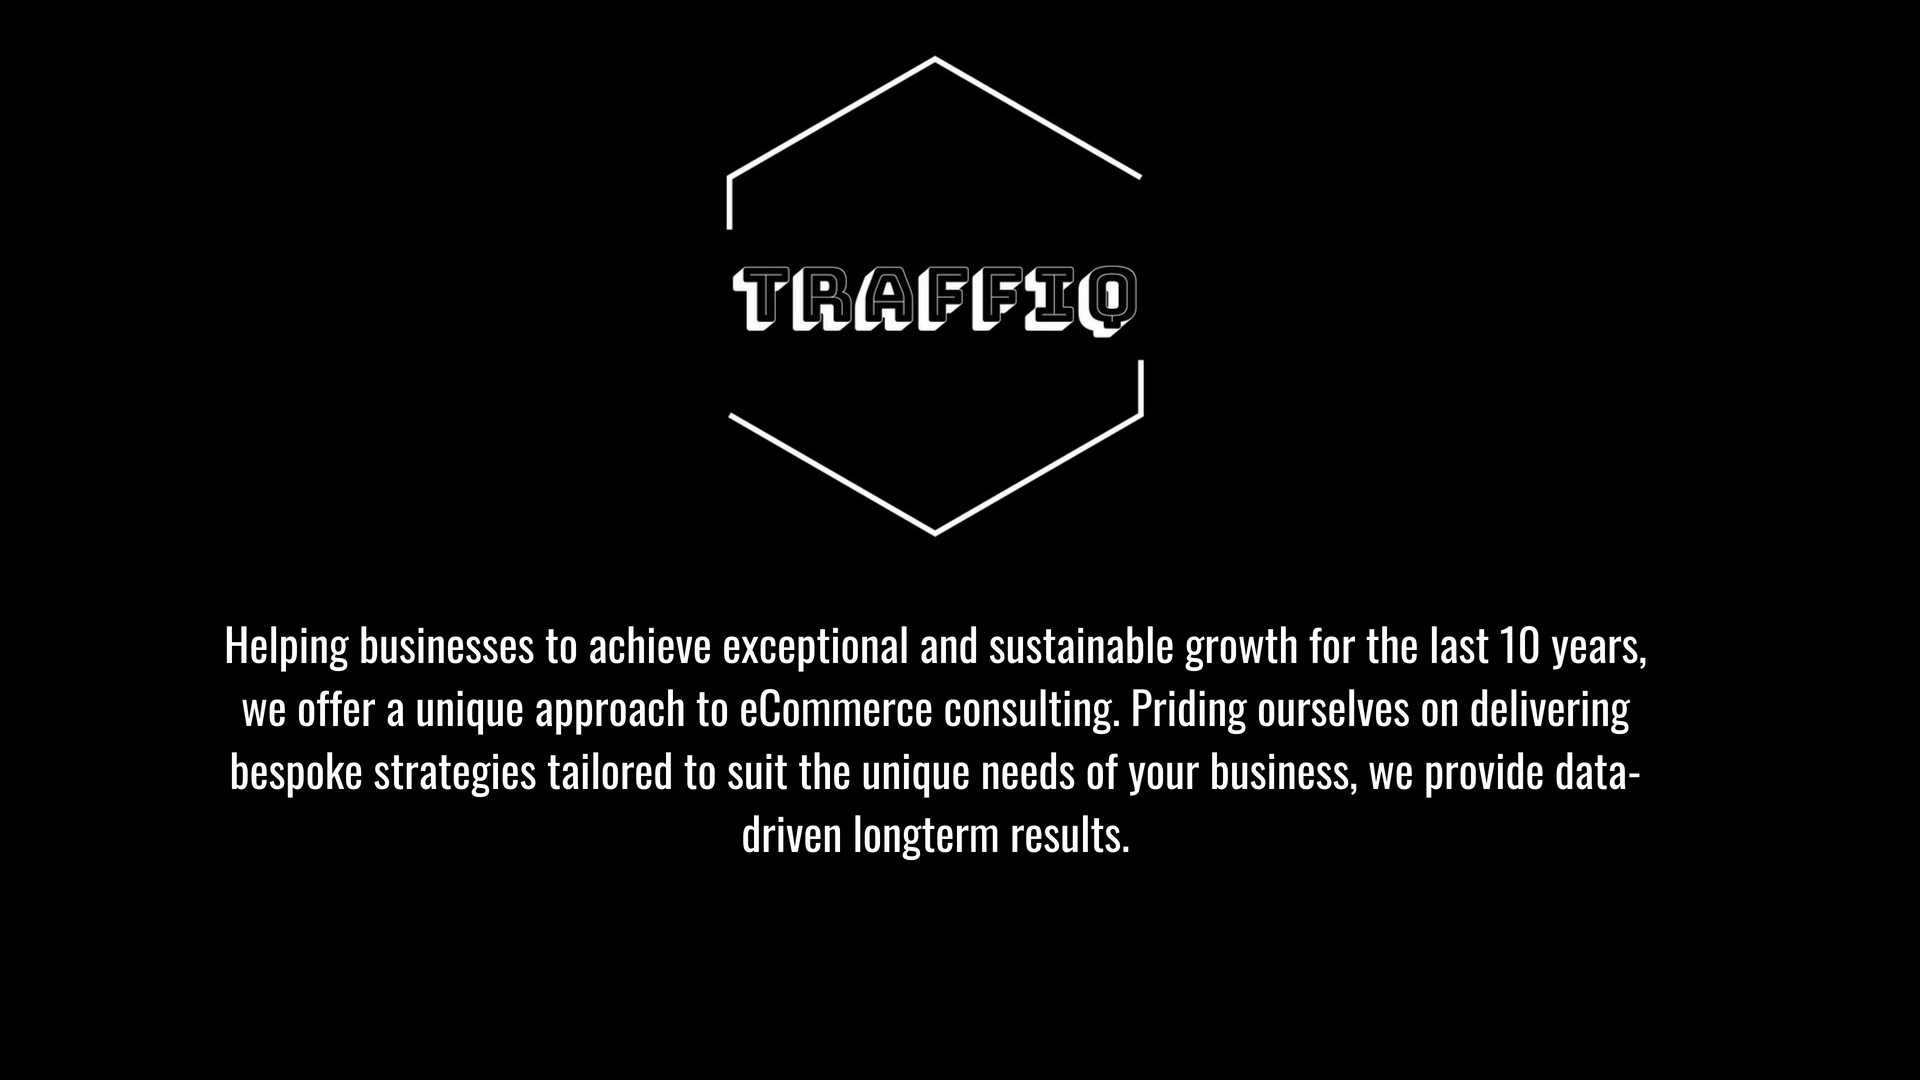 | Brand Building | Digital Strategy | eCommerce Expertise |-5